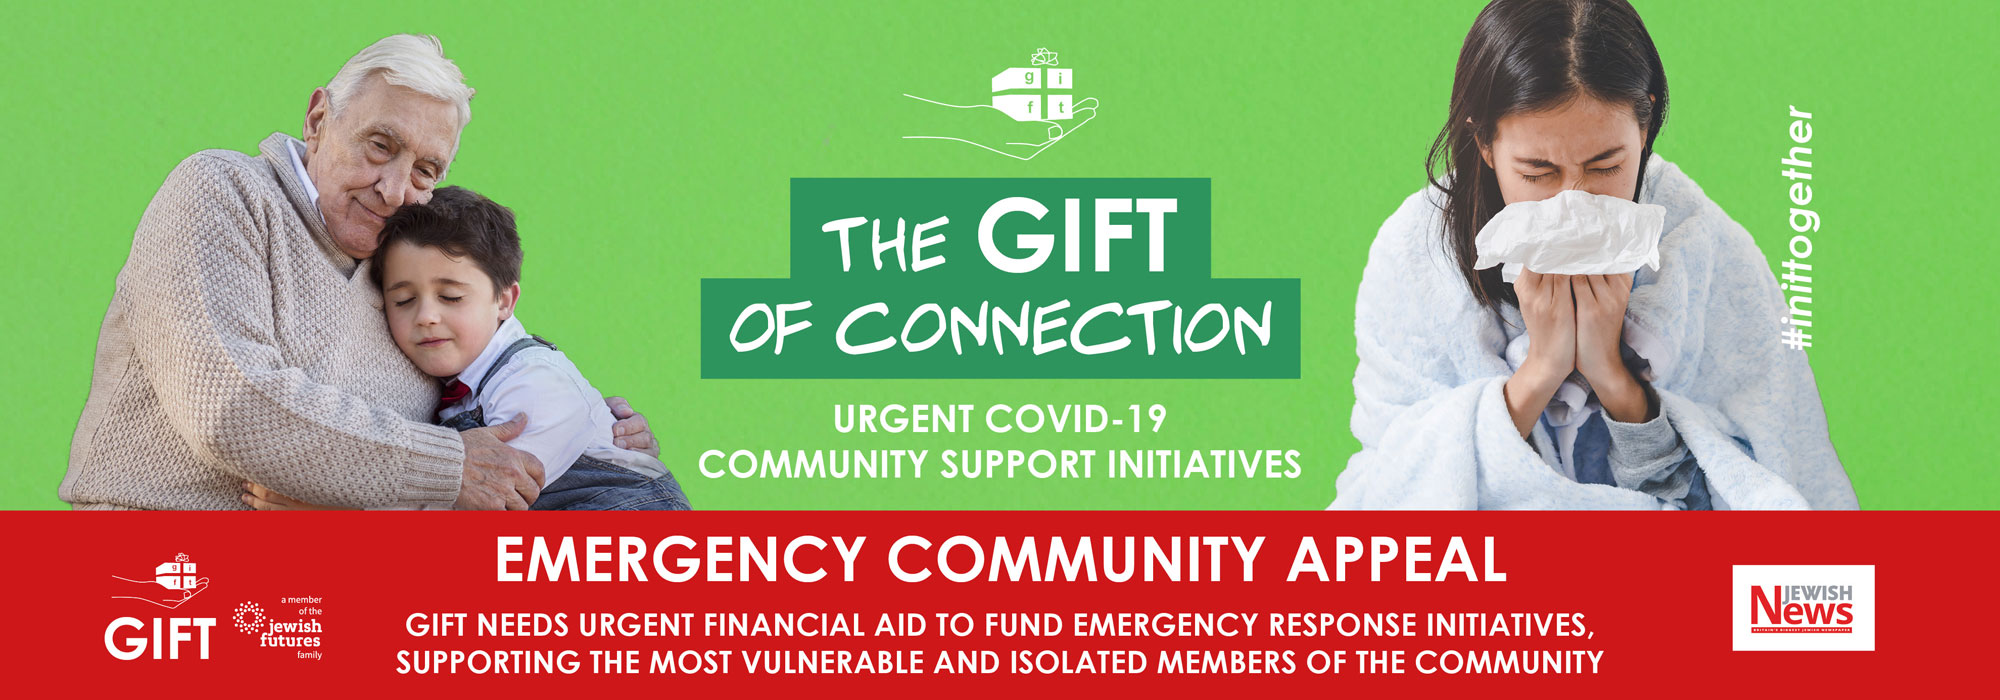 The GIFT of Connection - Urgent Covid-19 Community Support Initiatives - Emergency Community Appeal - GIFT needs urgent financial aid to fund emergency response initiatives, supporting the most vulnerable and isolated members of the community #inittogether